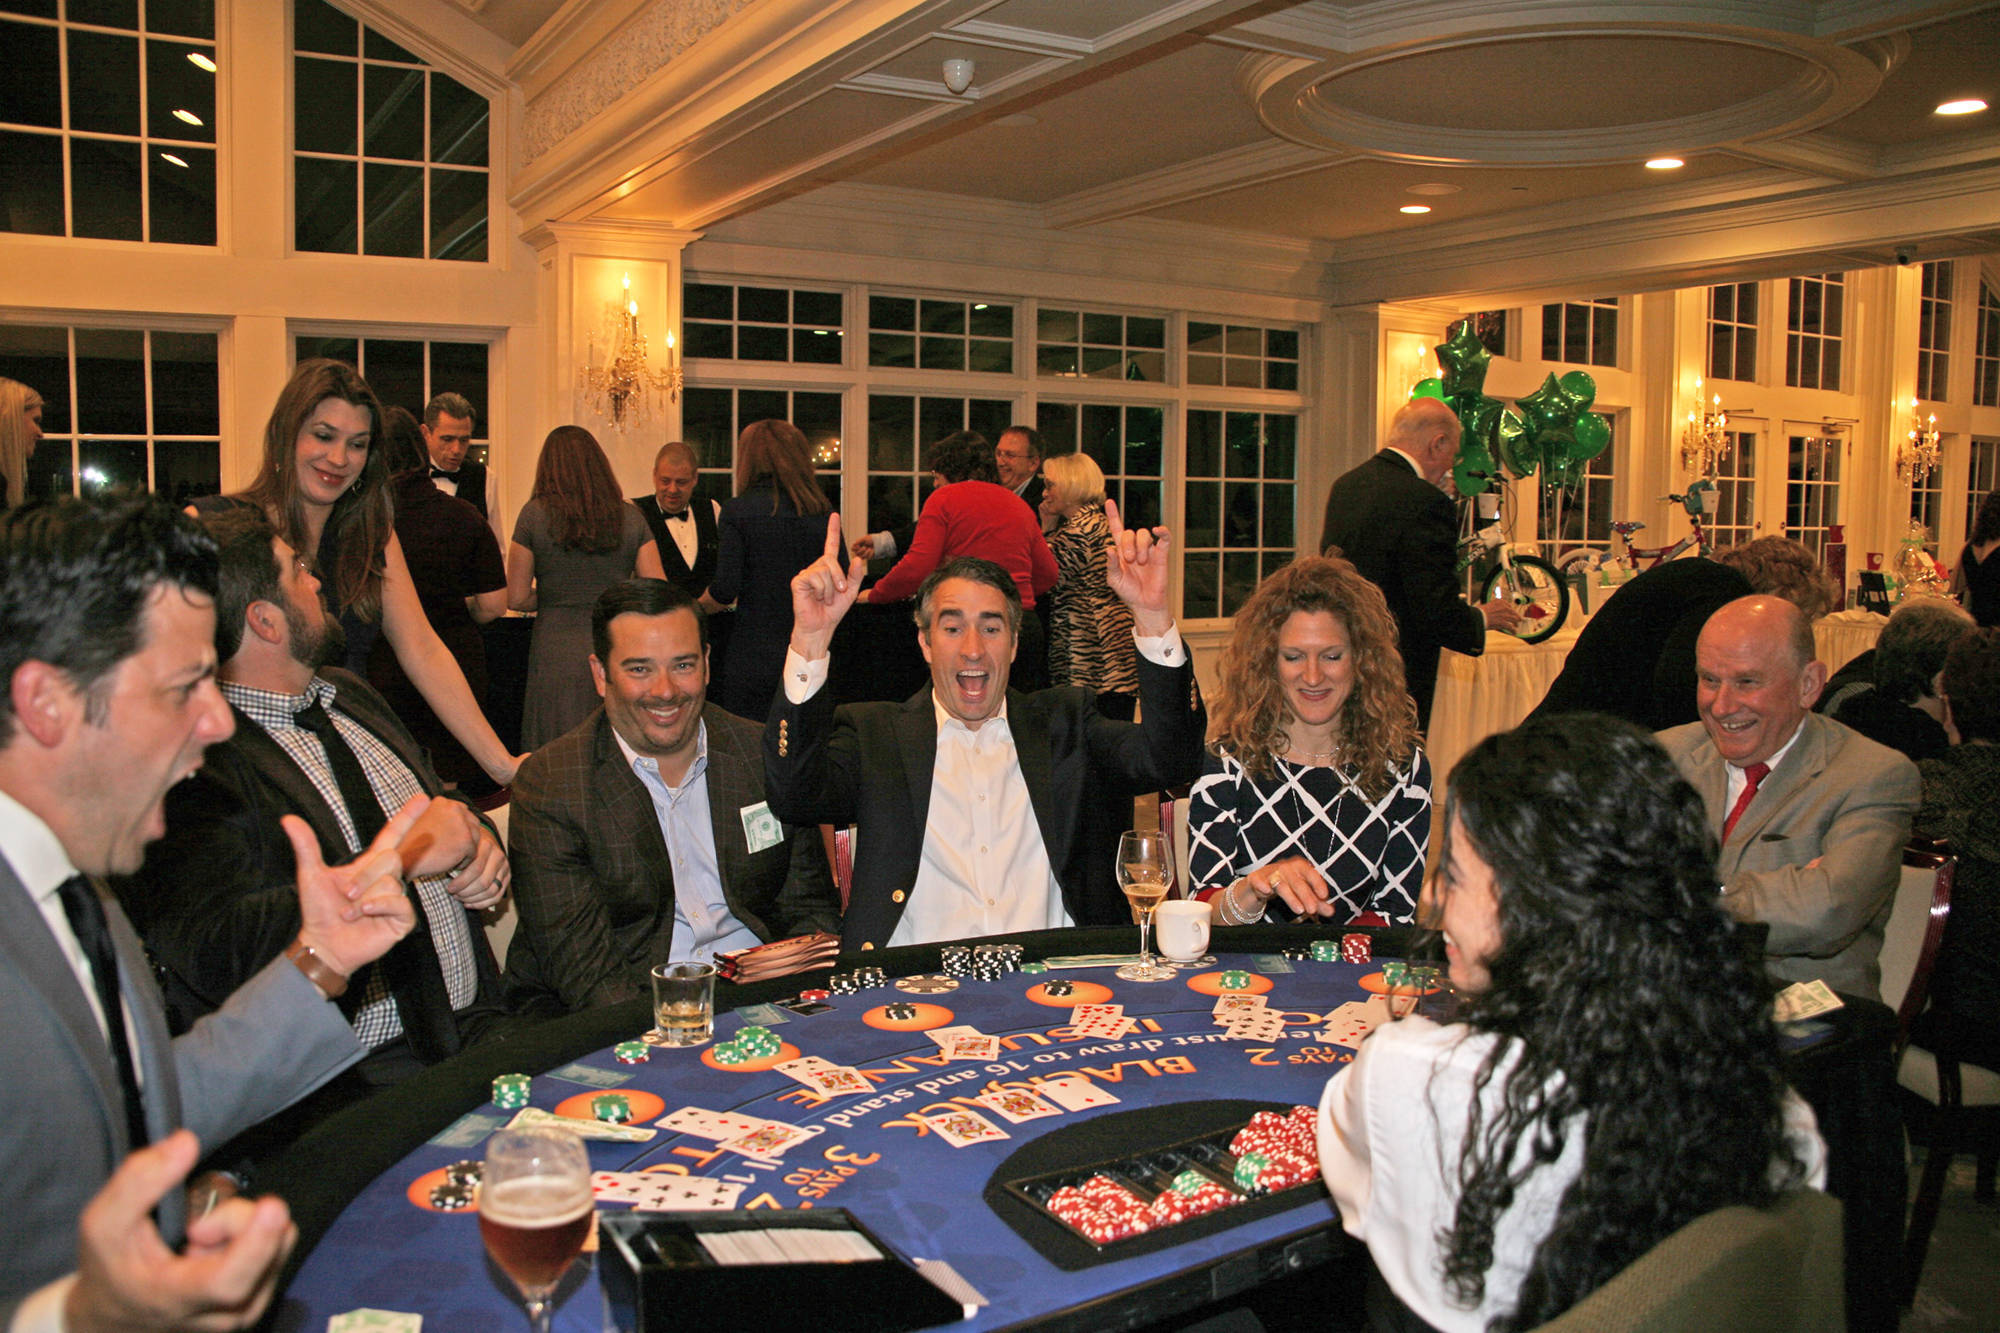 201d82625ec412bab968_CASA_Casino_Night.jpg